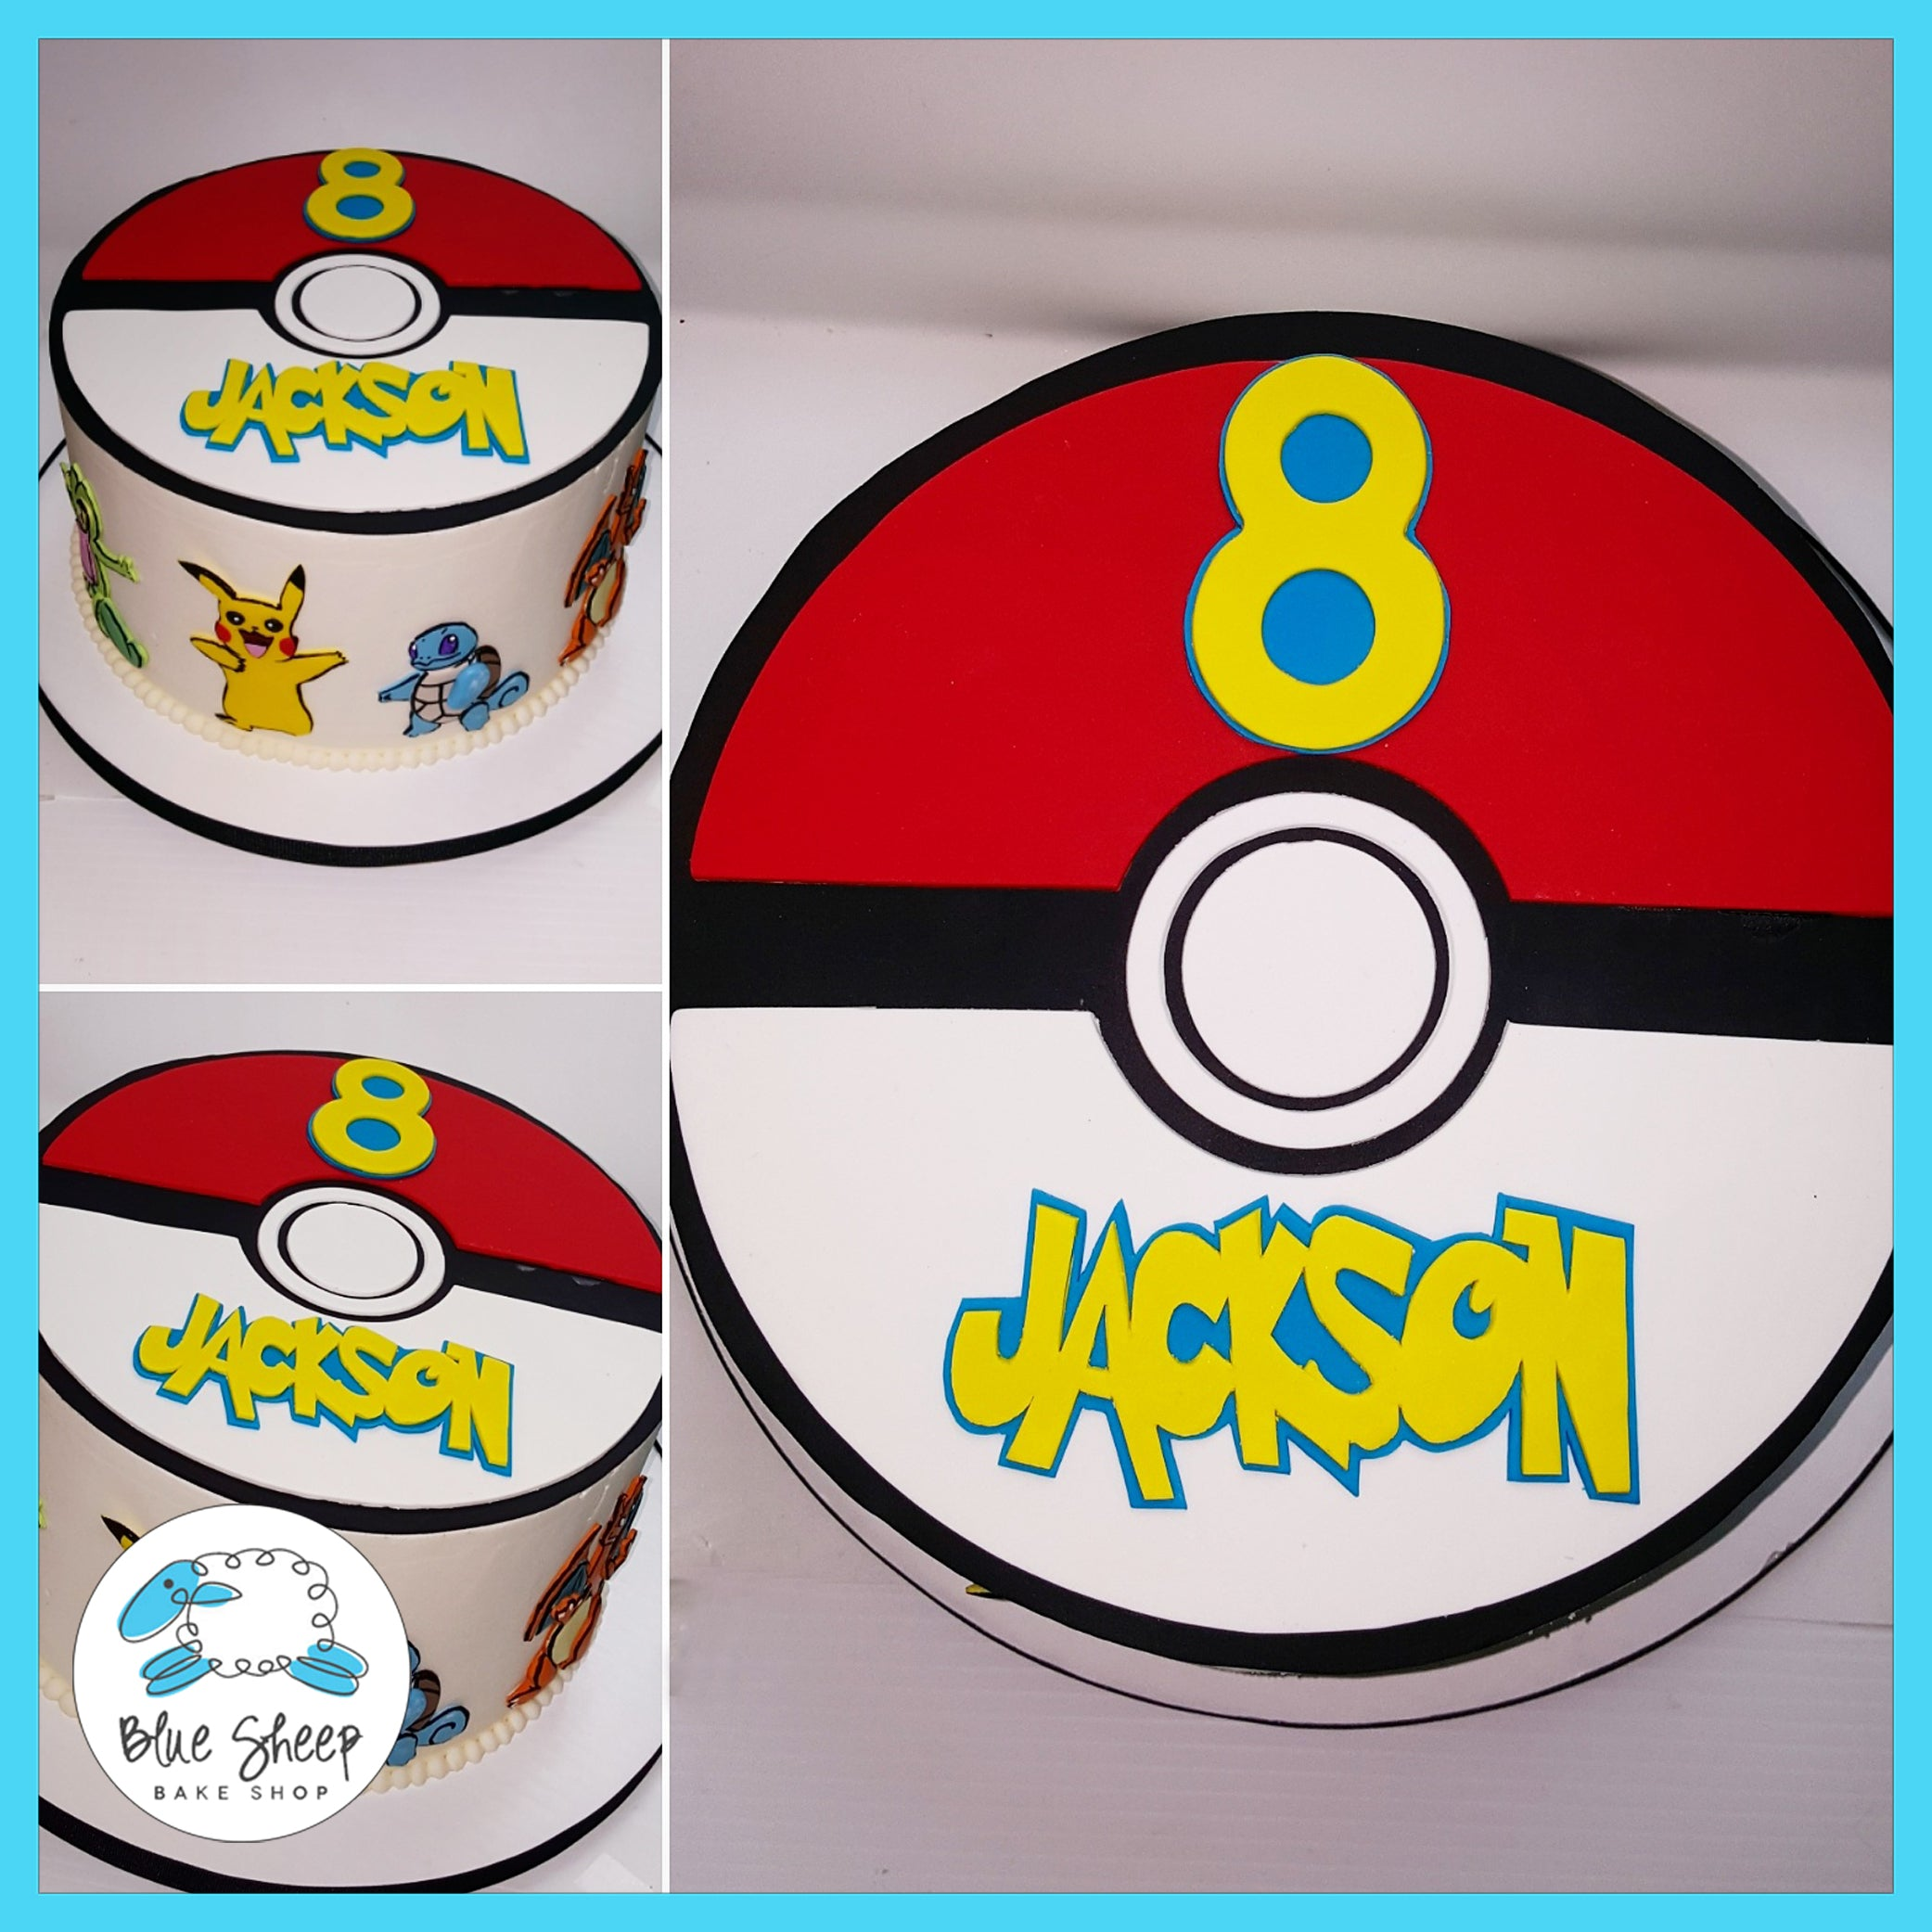 Stupendous Jacksons Pokemon Birthday Cake Nj Blue Sheep Bake Shop Personalised Birthday Cards Bromeletsinfo